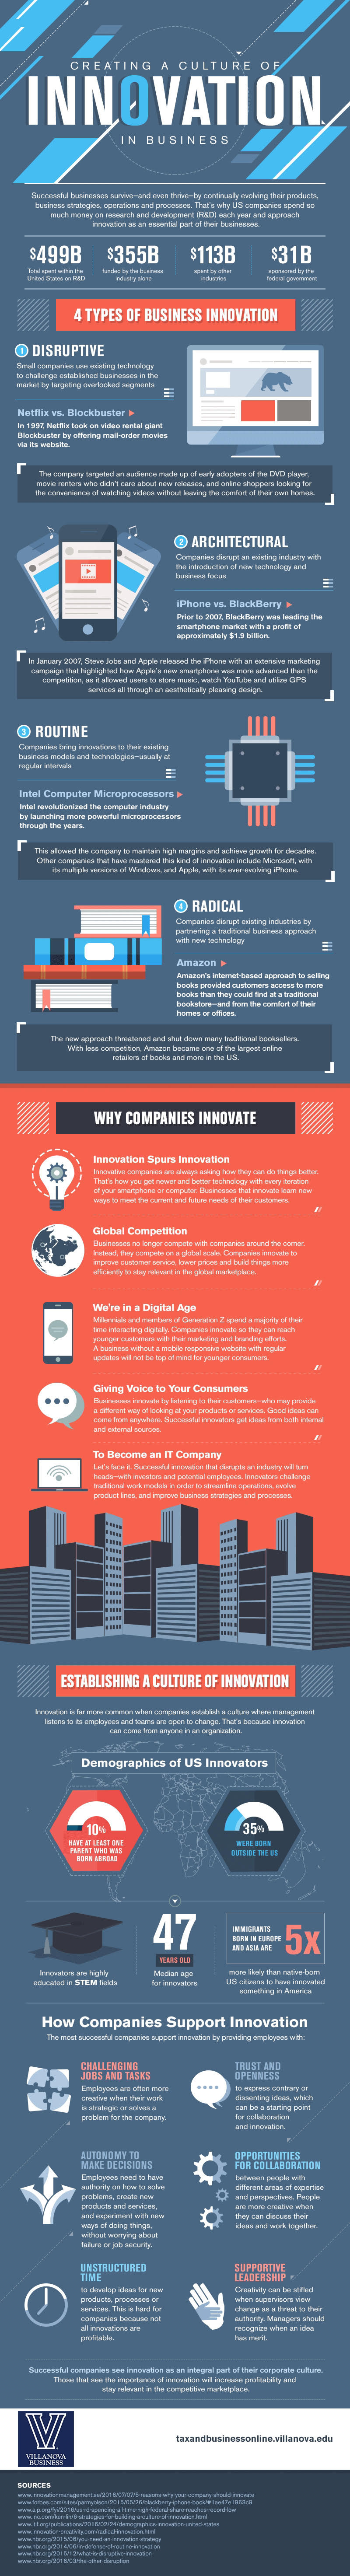 Culture_of_Innovation_infographic